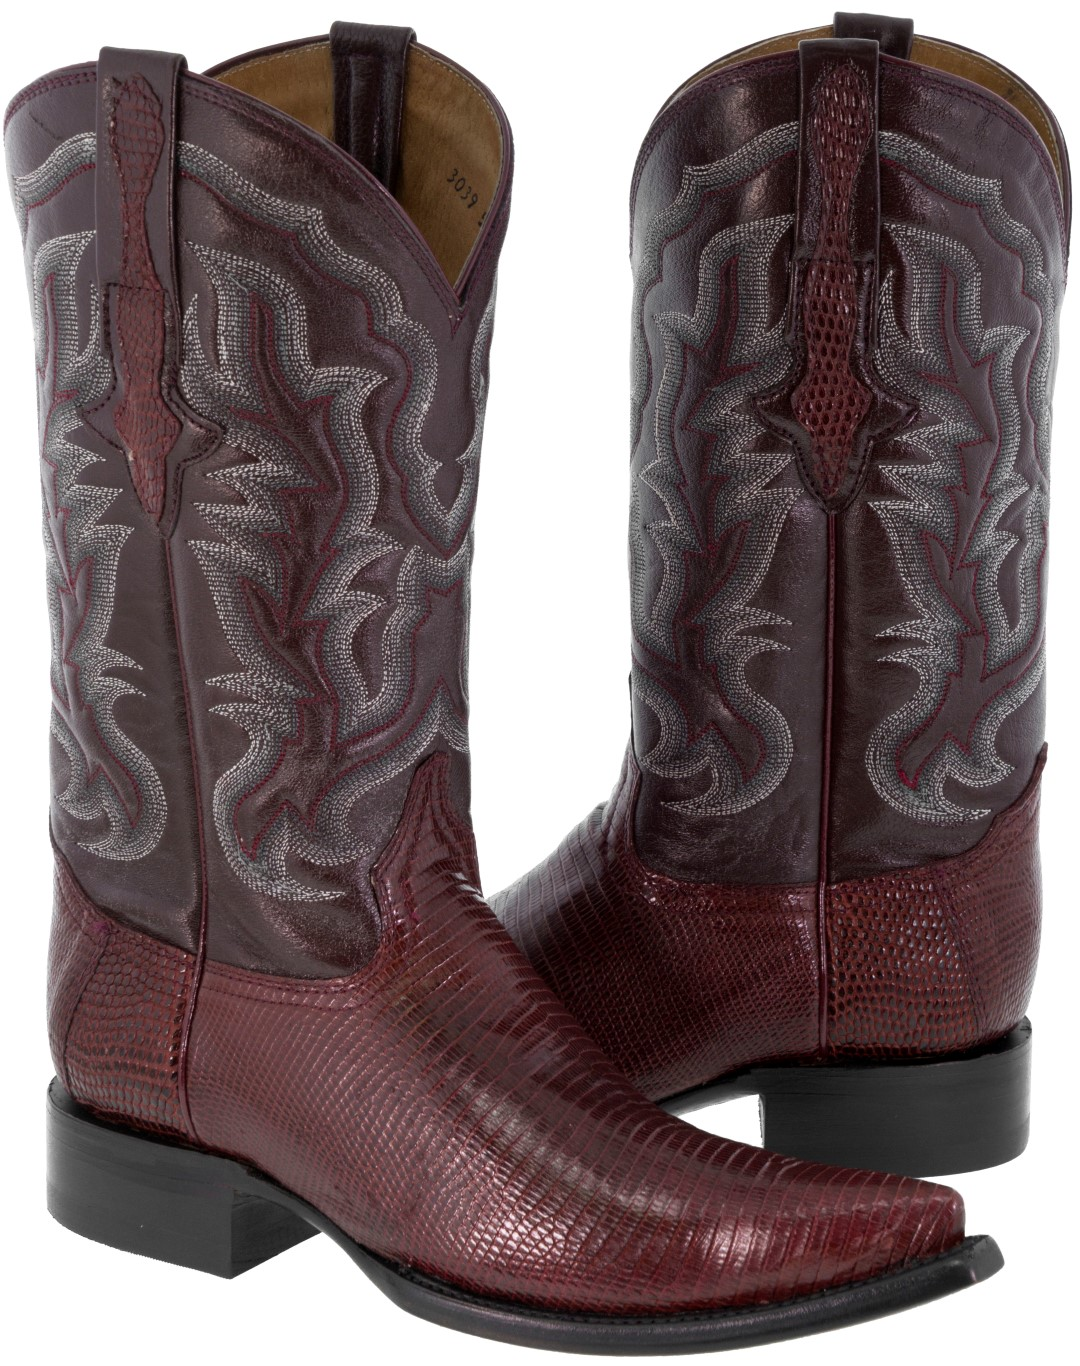 1806437fd9b Details about Men's Burgundy Genuine Teju Lizard Exotic Skin Leather Cowboy  Boots Pointed Toe